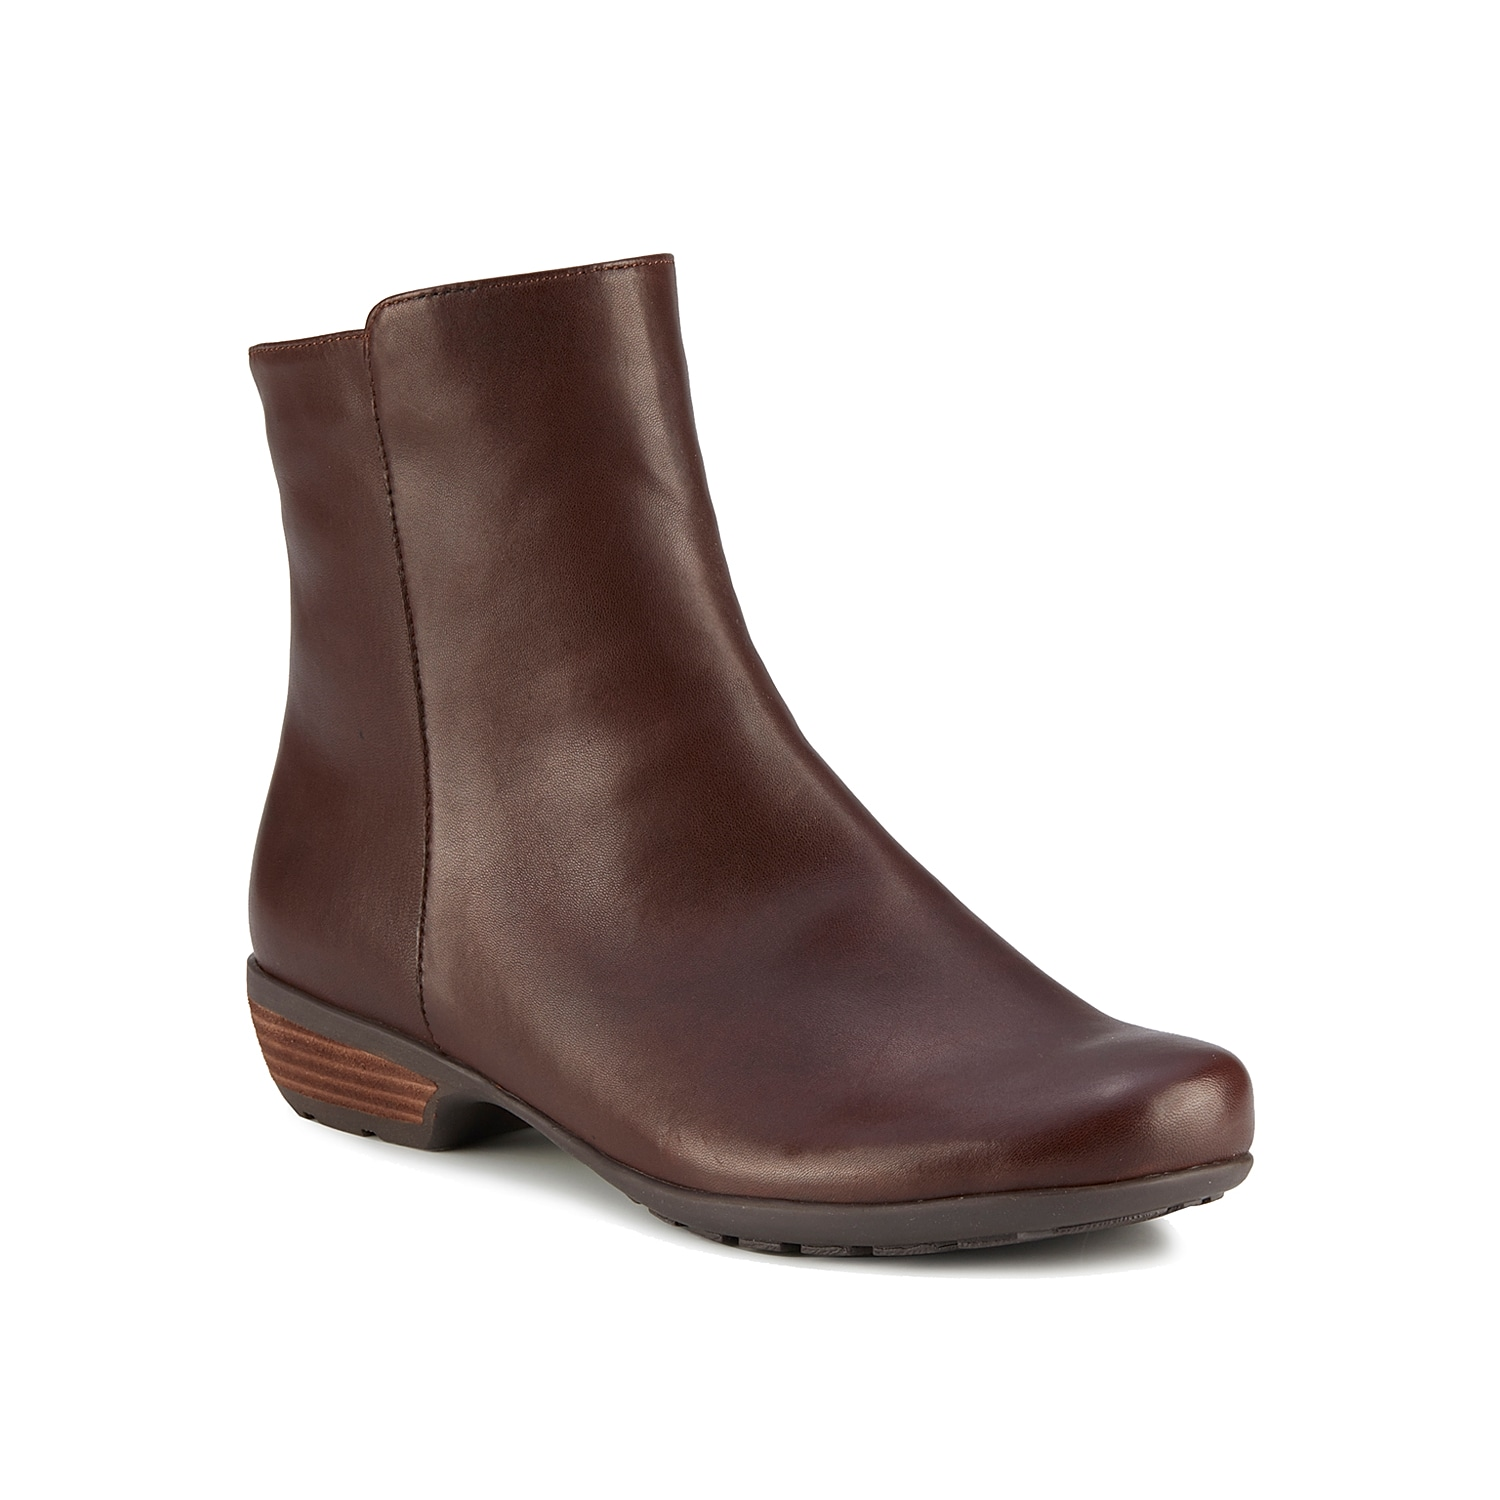 The Josephine bootie from Walking Cradles is classic enough for any outfit. A Tiny Pillows footbed keeps every step supported. Click here for Boot Measuring Guide.